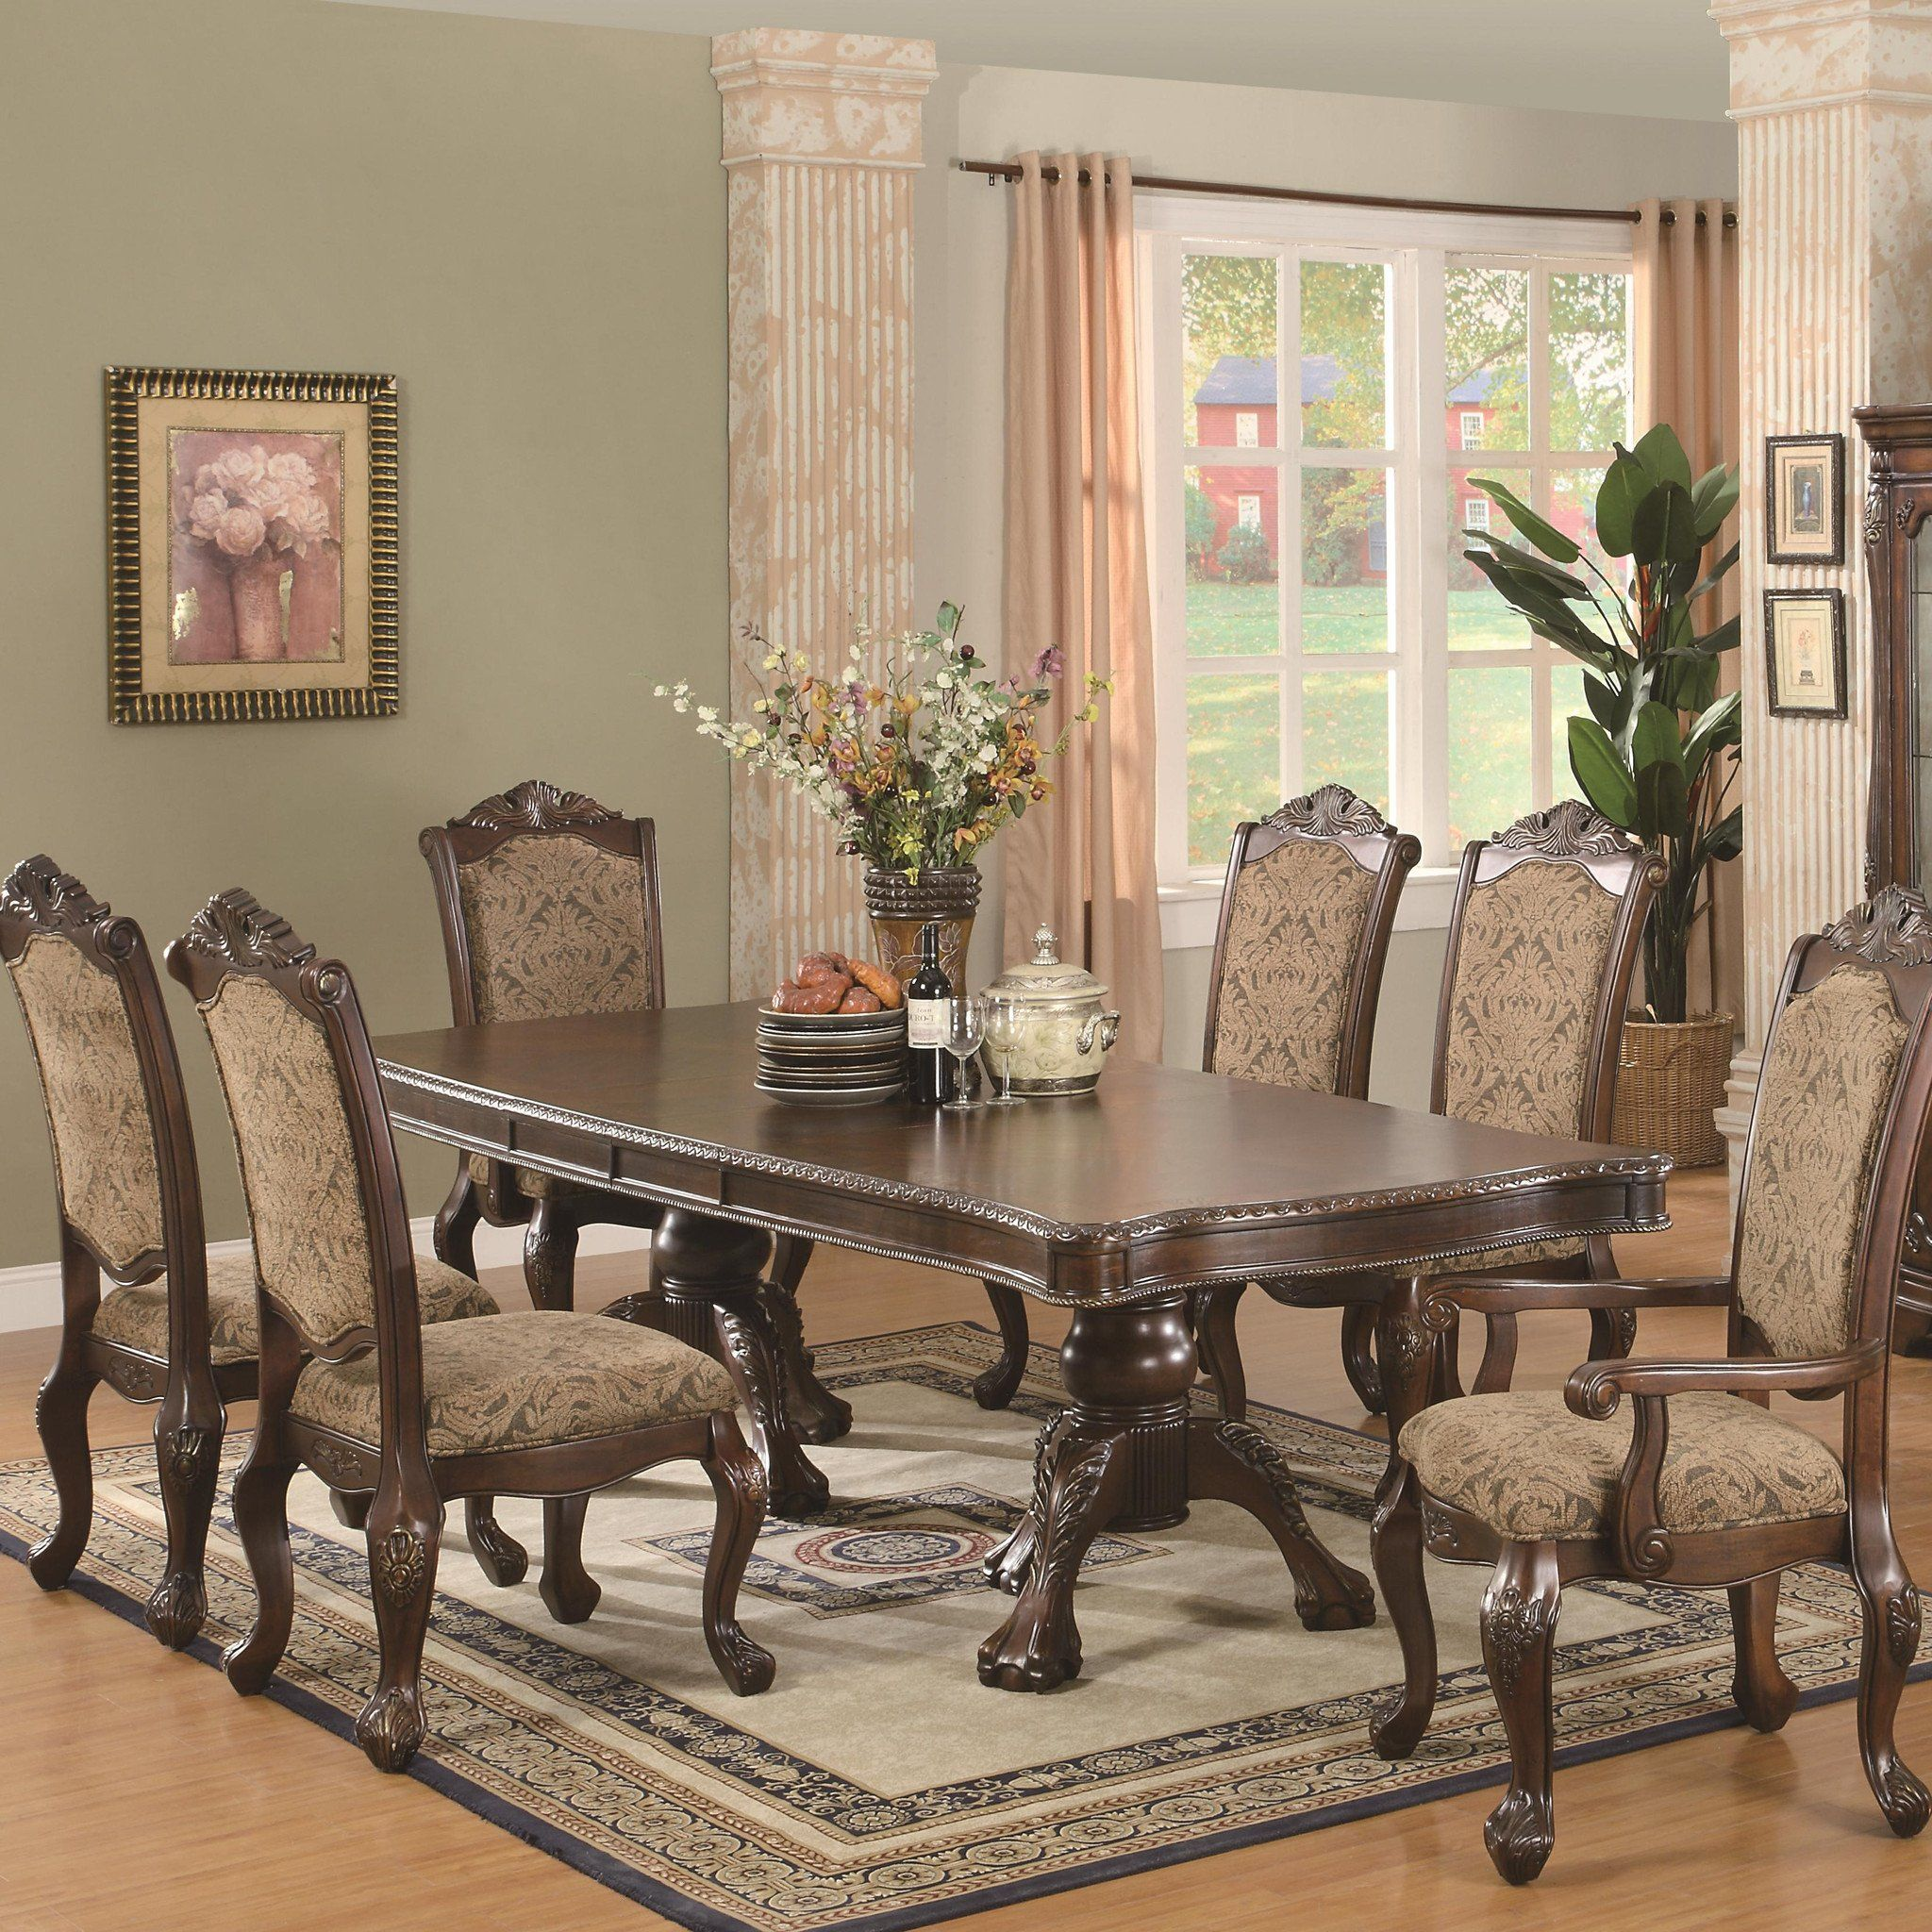 Cheap Formal Dining Room Sets: Andrea Arm Chair In 2019